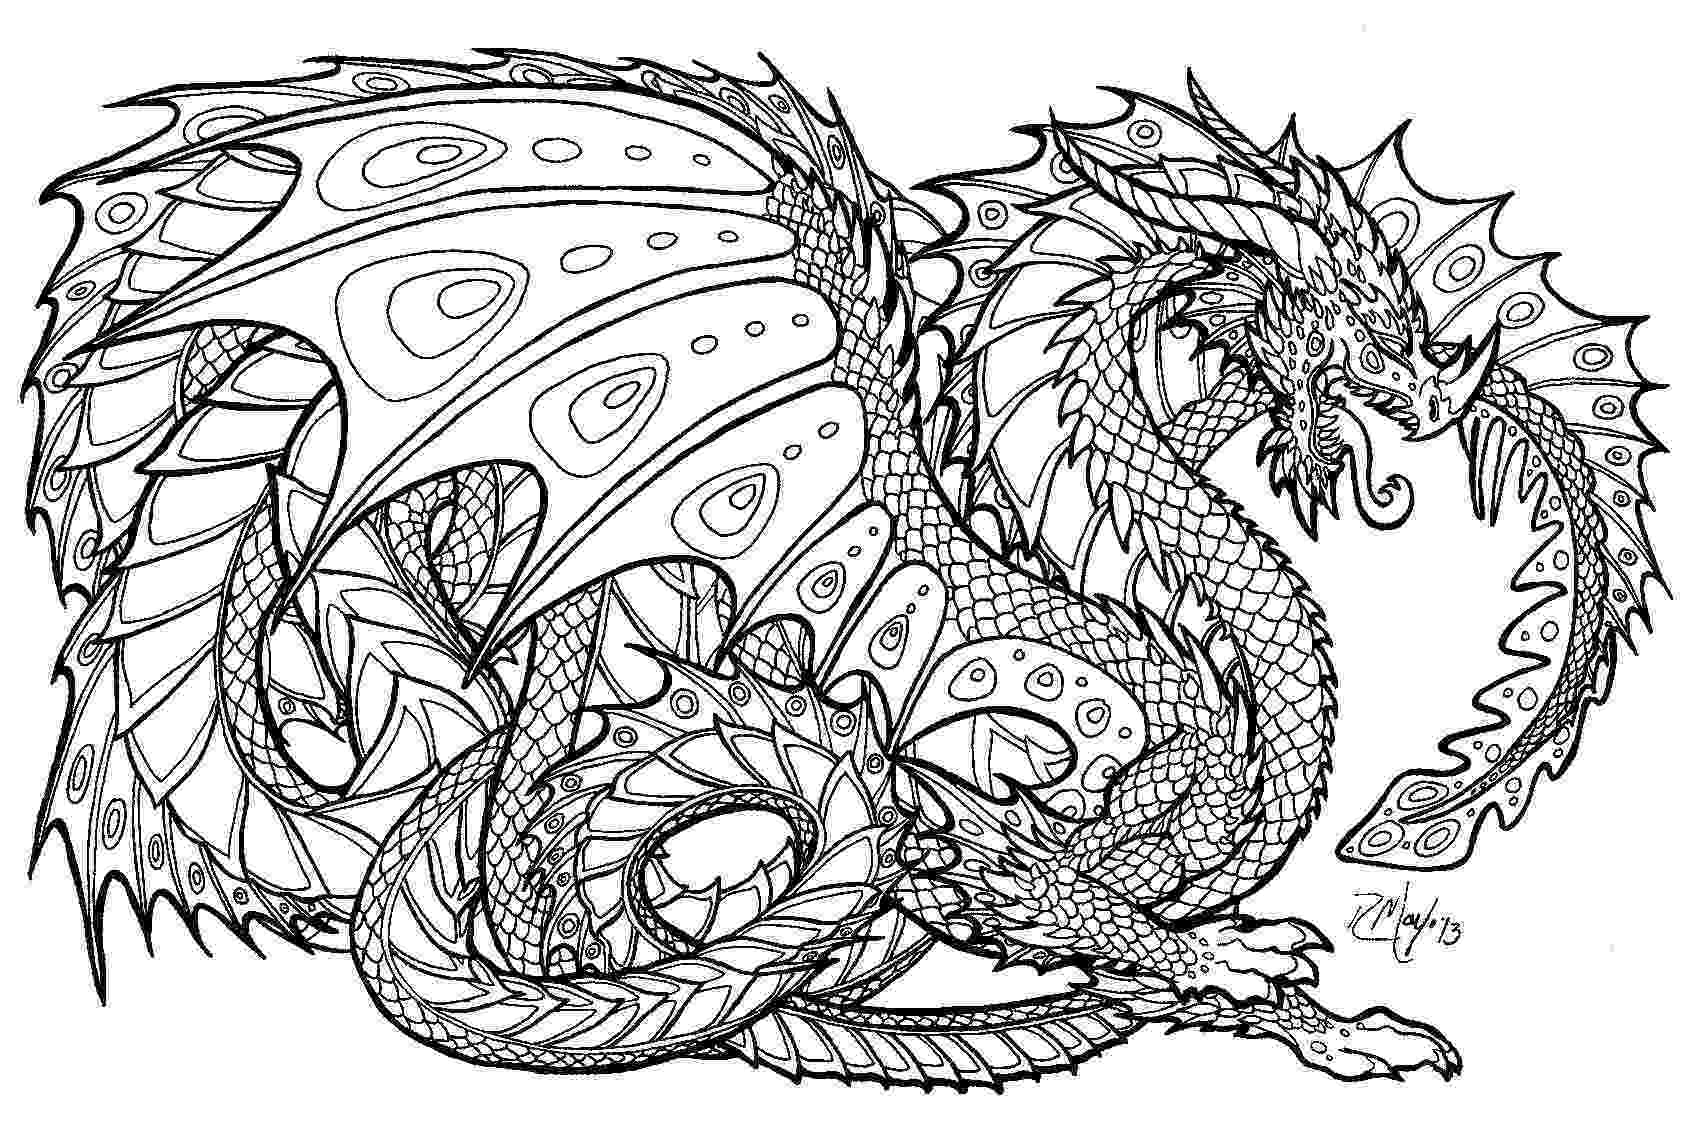 printable dragon pictures free printable coloring pages for adults advanced dragons printable dragon pictures